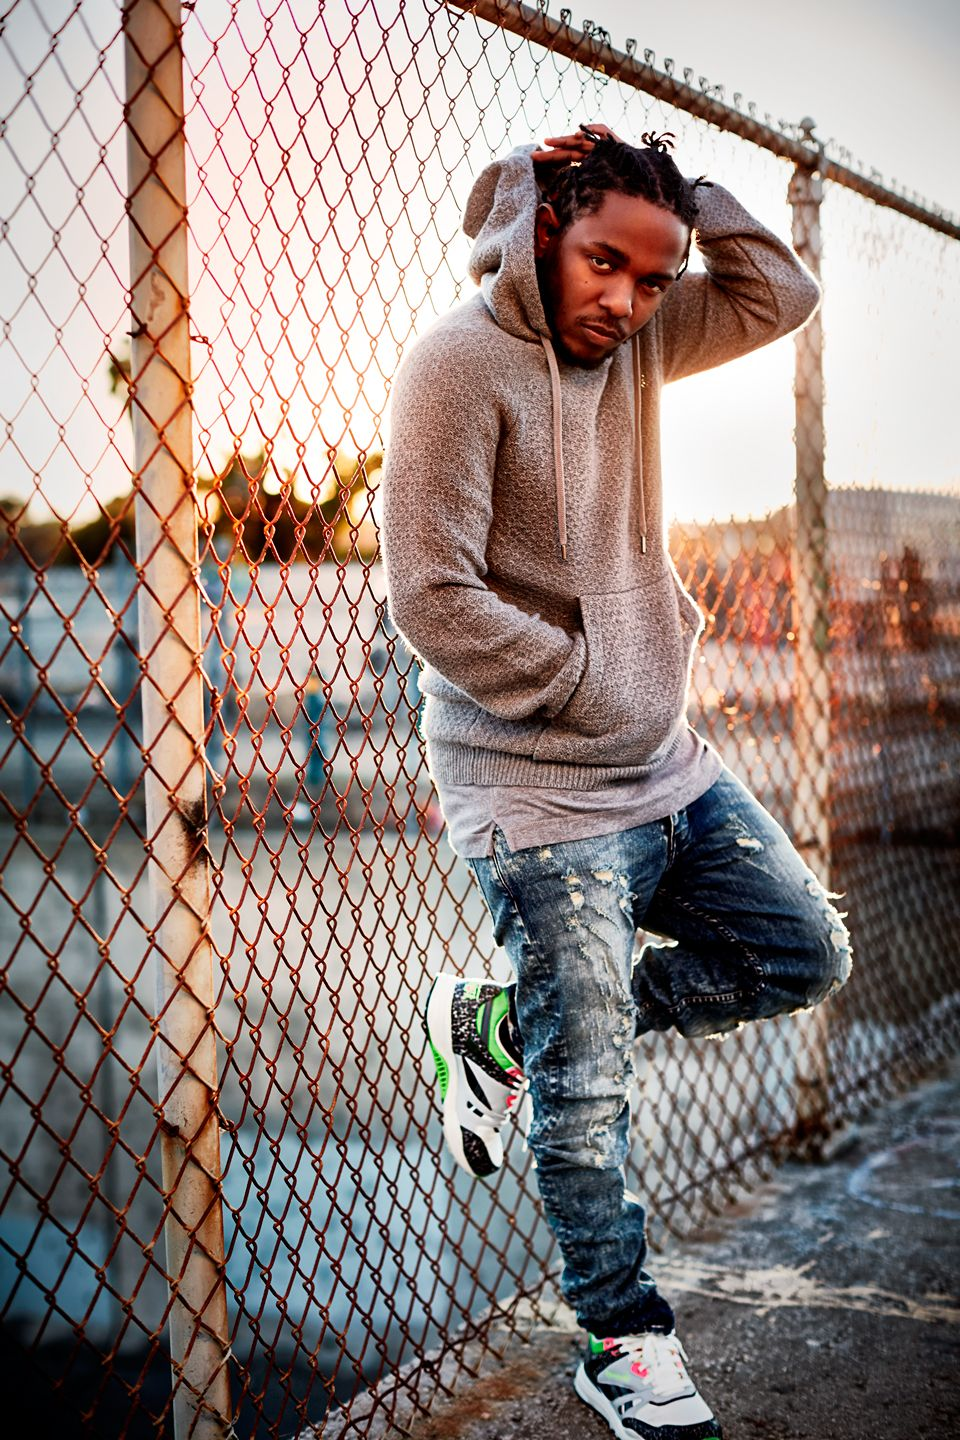 8a3a5ebee41 Reebok and Kendrick Lamar announced a partnership today! In 2015 this  collaboration will center around the 25th anniversary of the legendary  Reebok ...